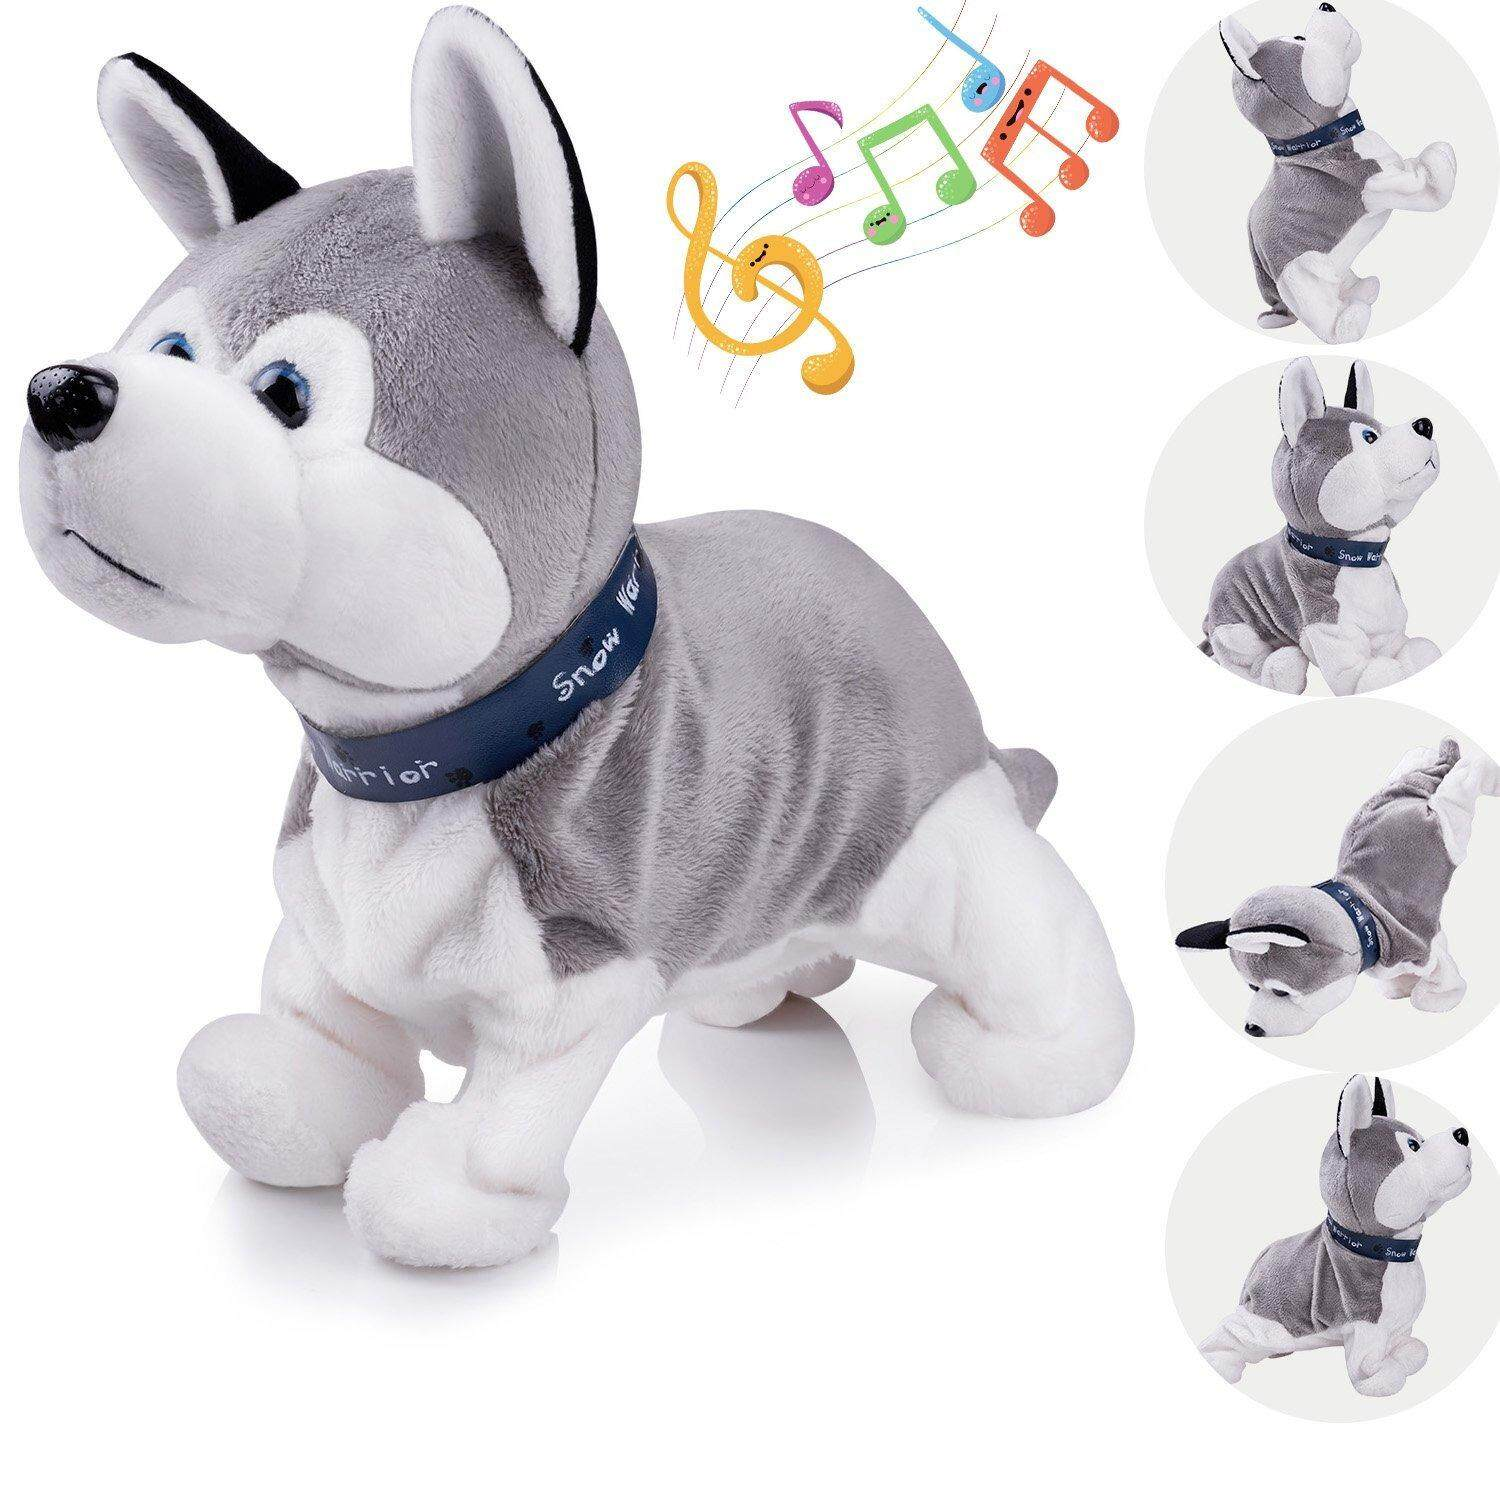 Toy Pets For Sale Electronic Pets Online Brands Prices Reviews